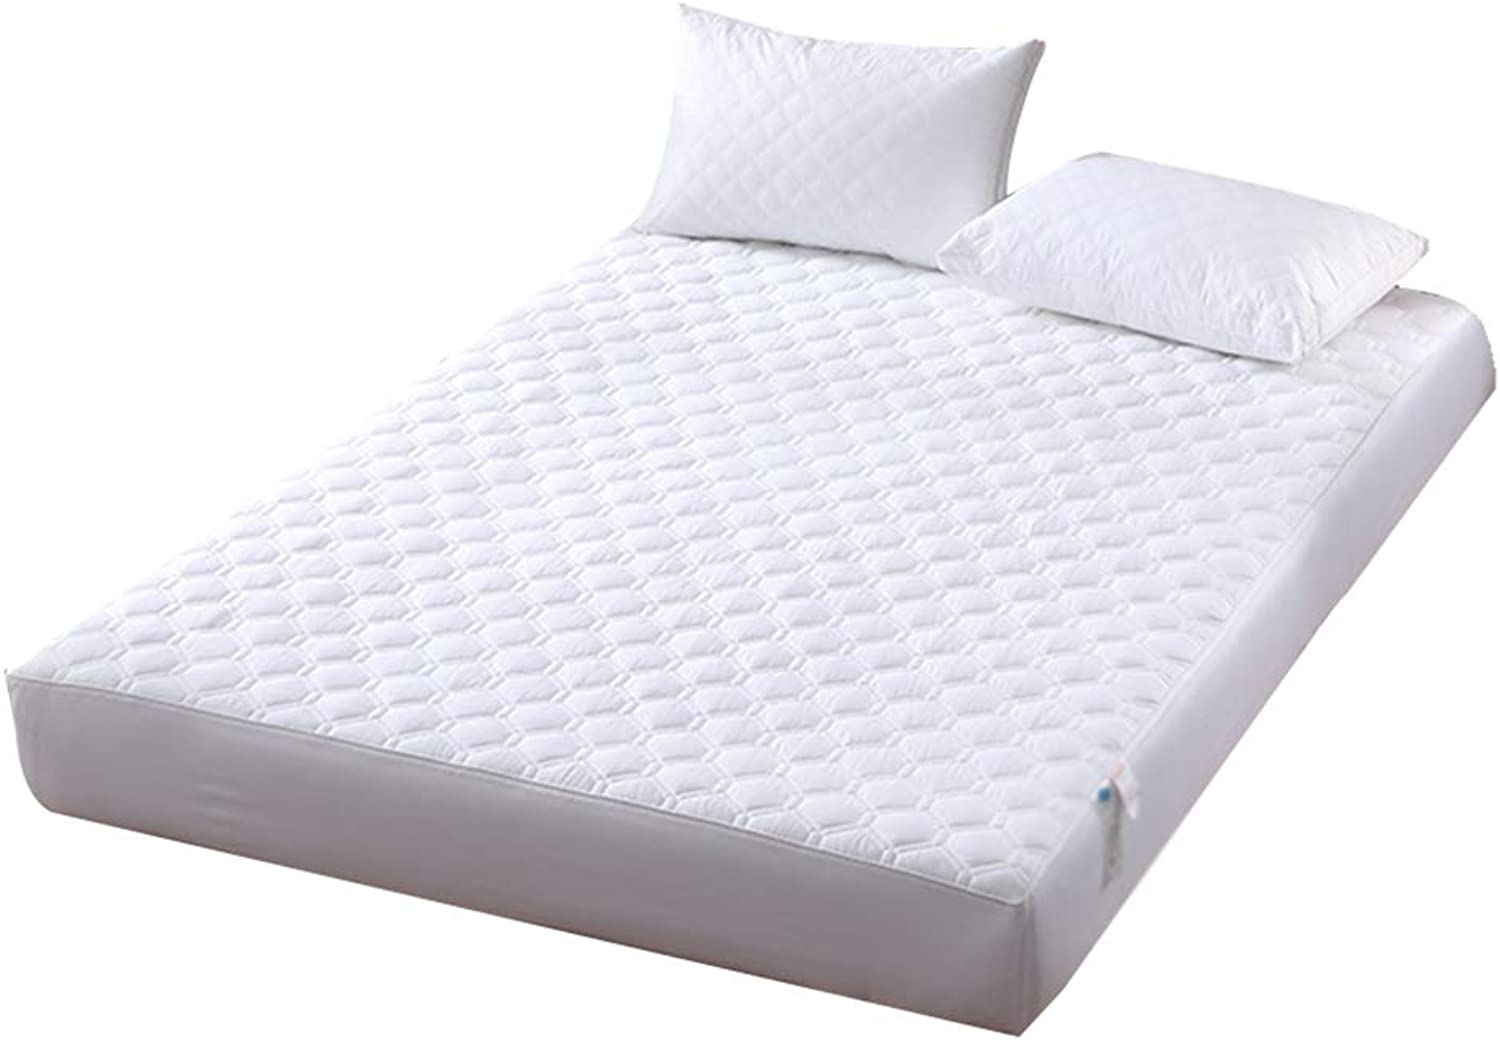 ZHAOHUI Mattress Predector Cotton Breathable Fiber Antibacterial Hygroscopic Quilted Non-Slip Soft Skin-Friendly, 5 colors, 3 Sizes (color   White, Size   150X200cm)